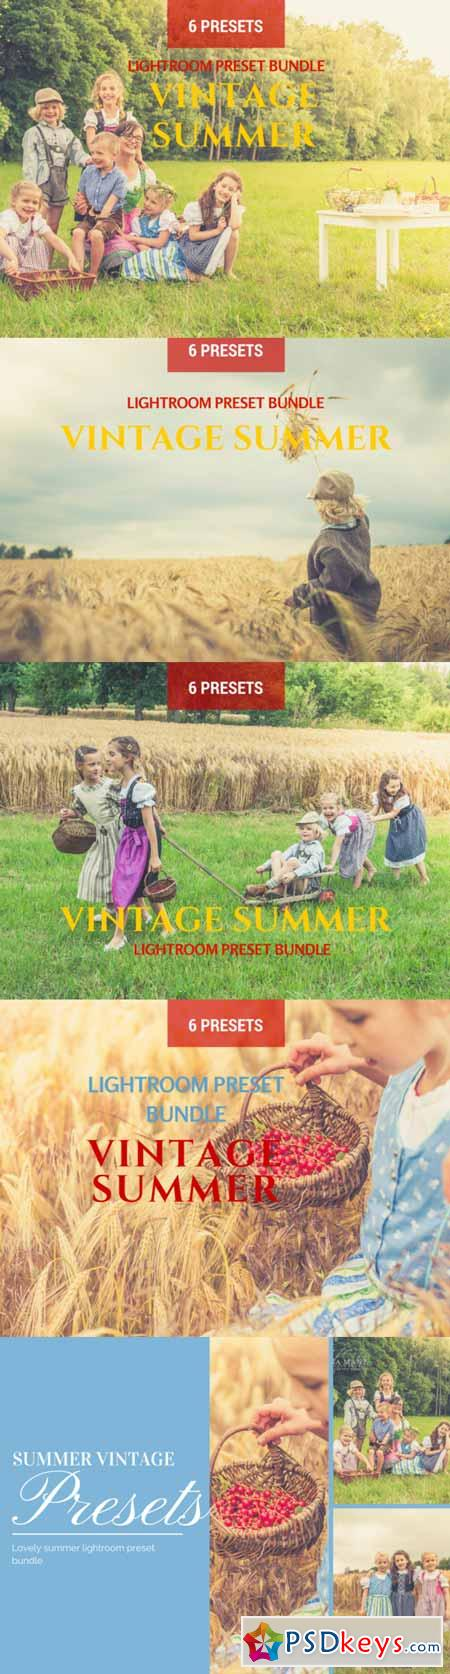 6 Summer Vintage Lightroom Presets 308410